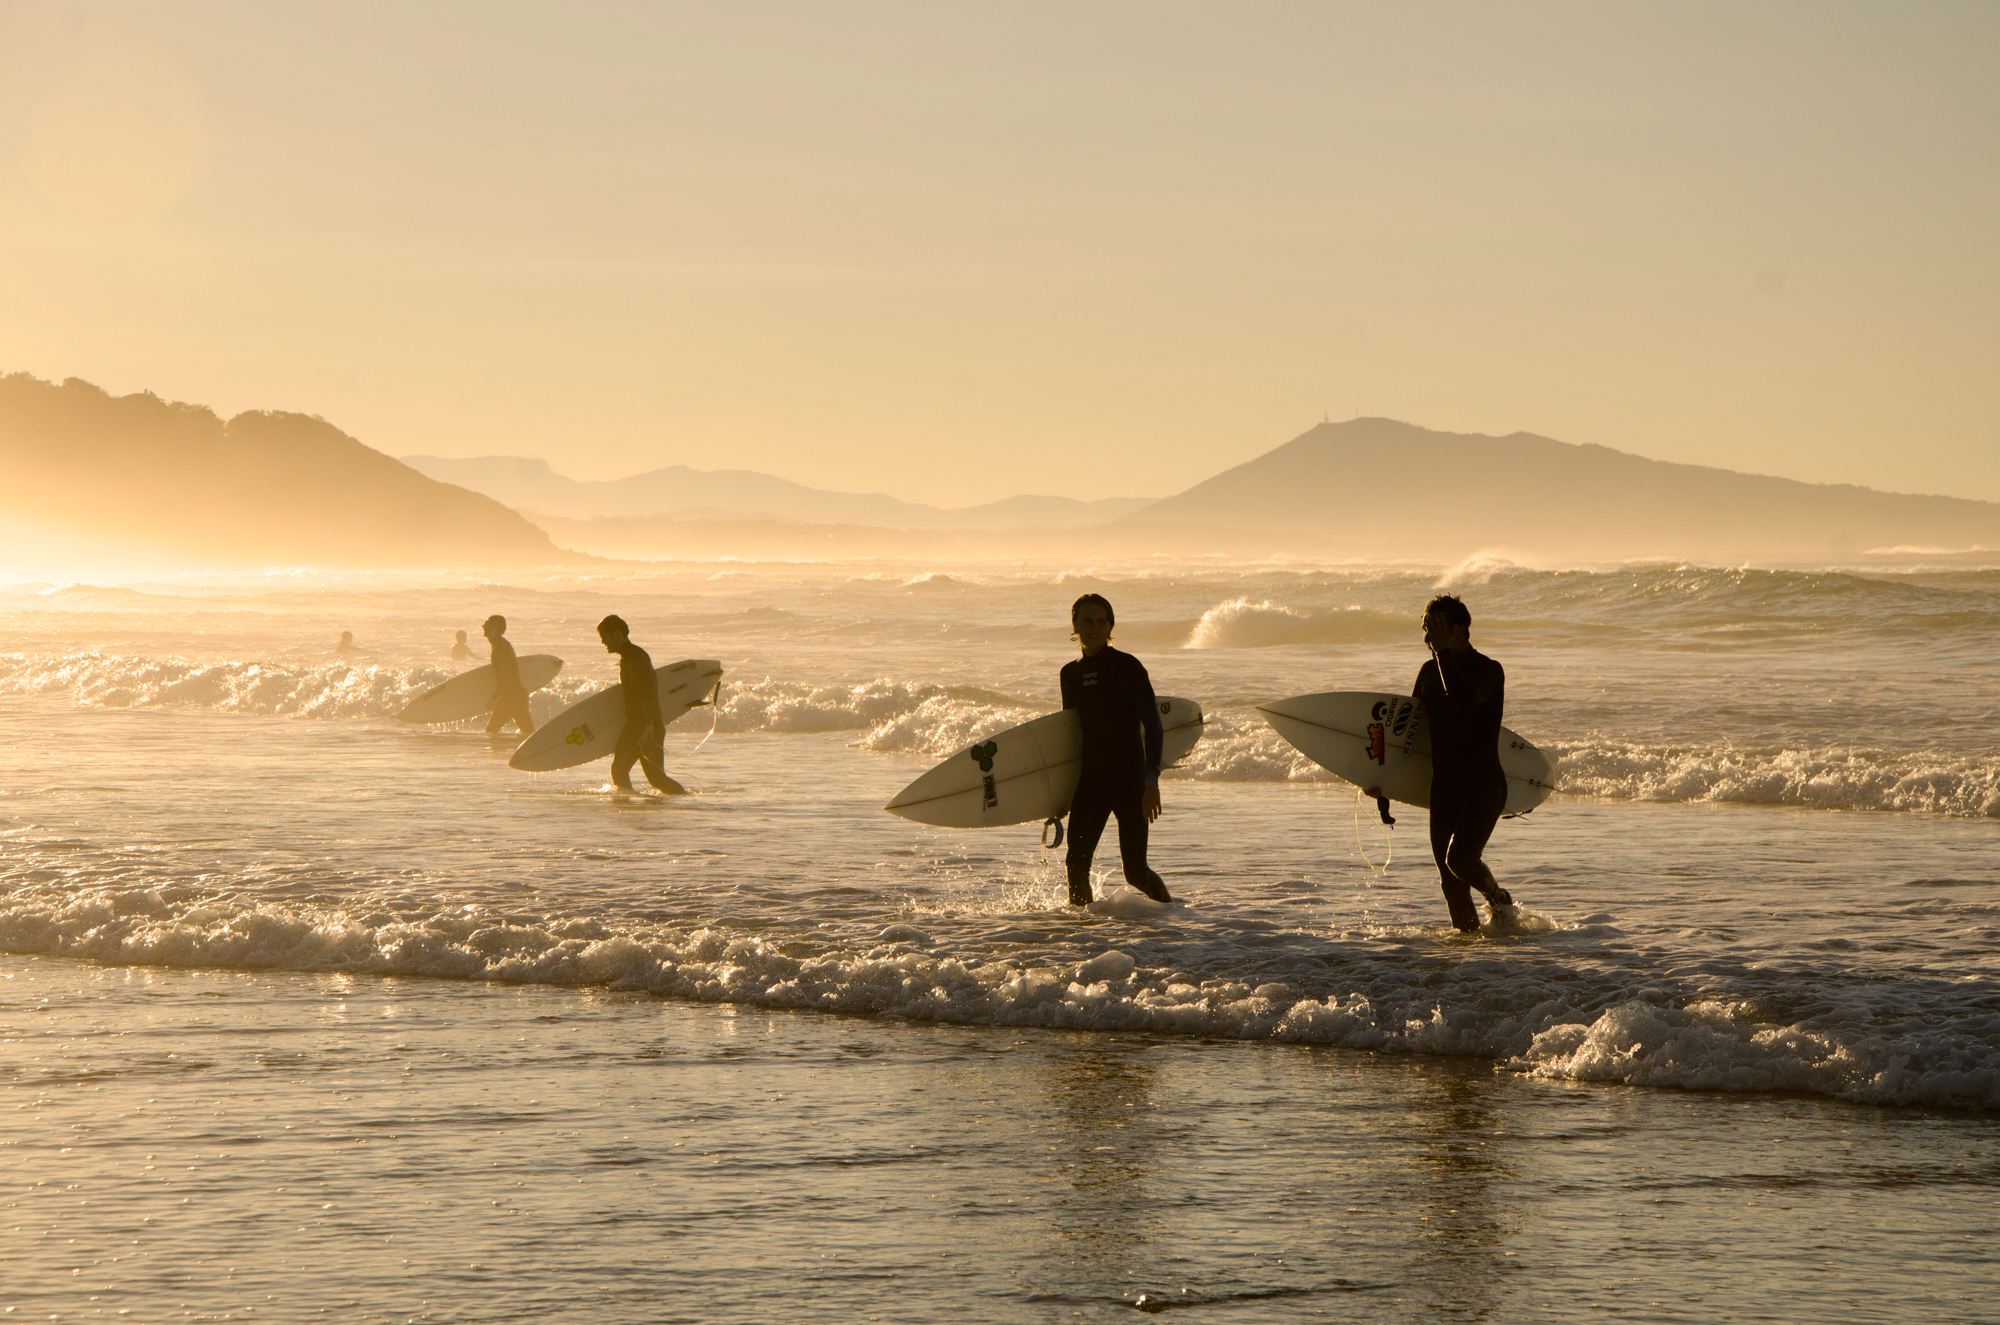 Surfers leaving the waves behind at a beach near Biarritz during sunset, France.